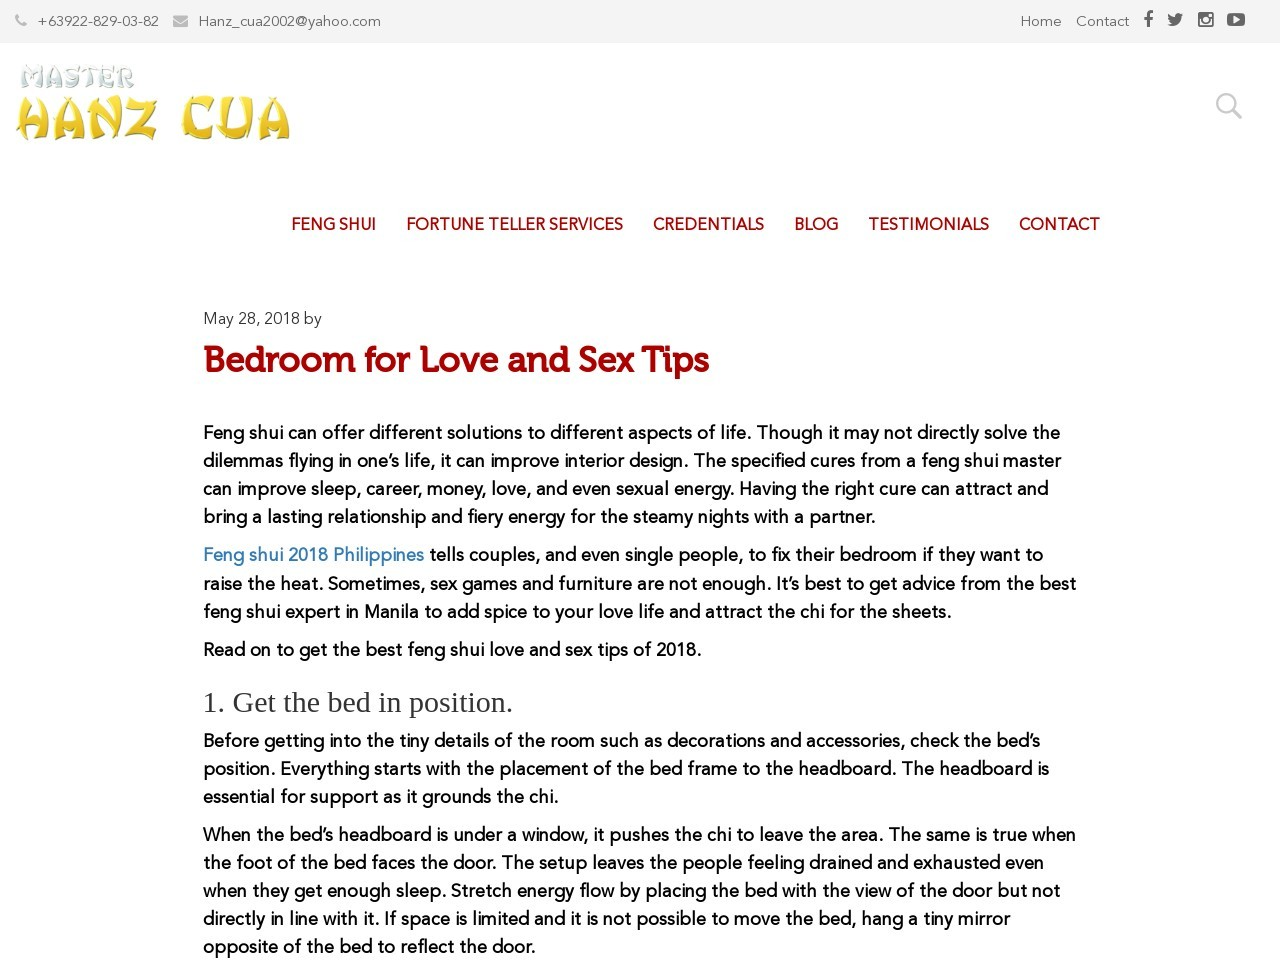 Bedroom for Love and Sex Tips